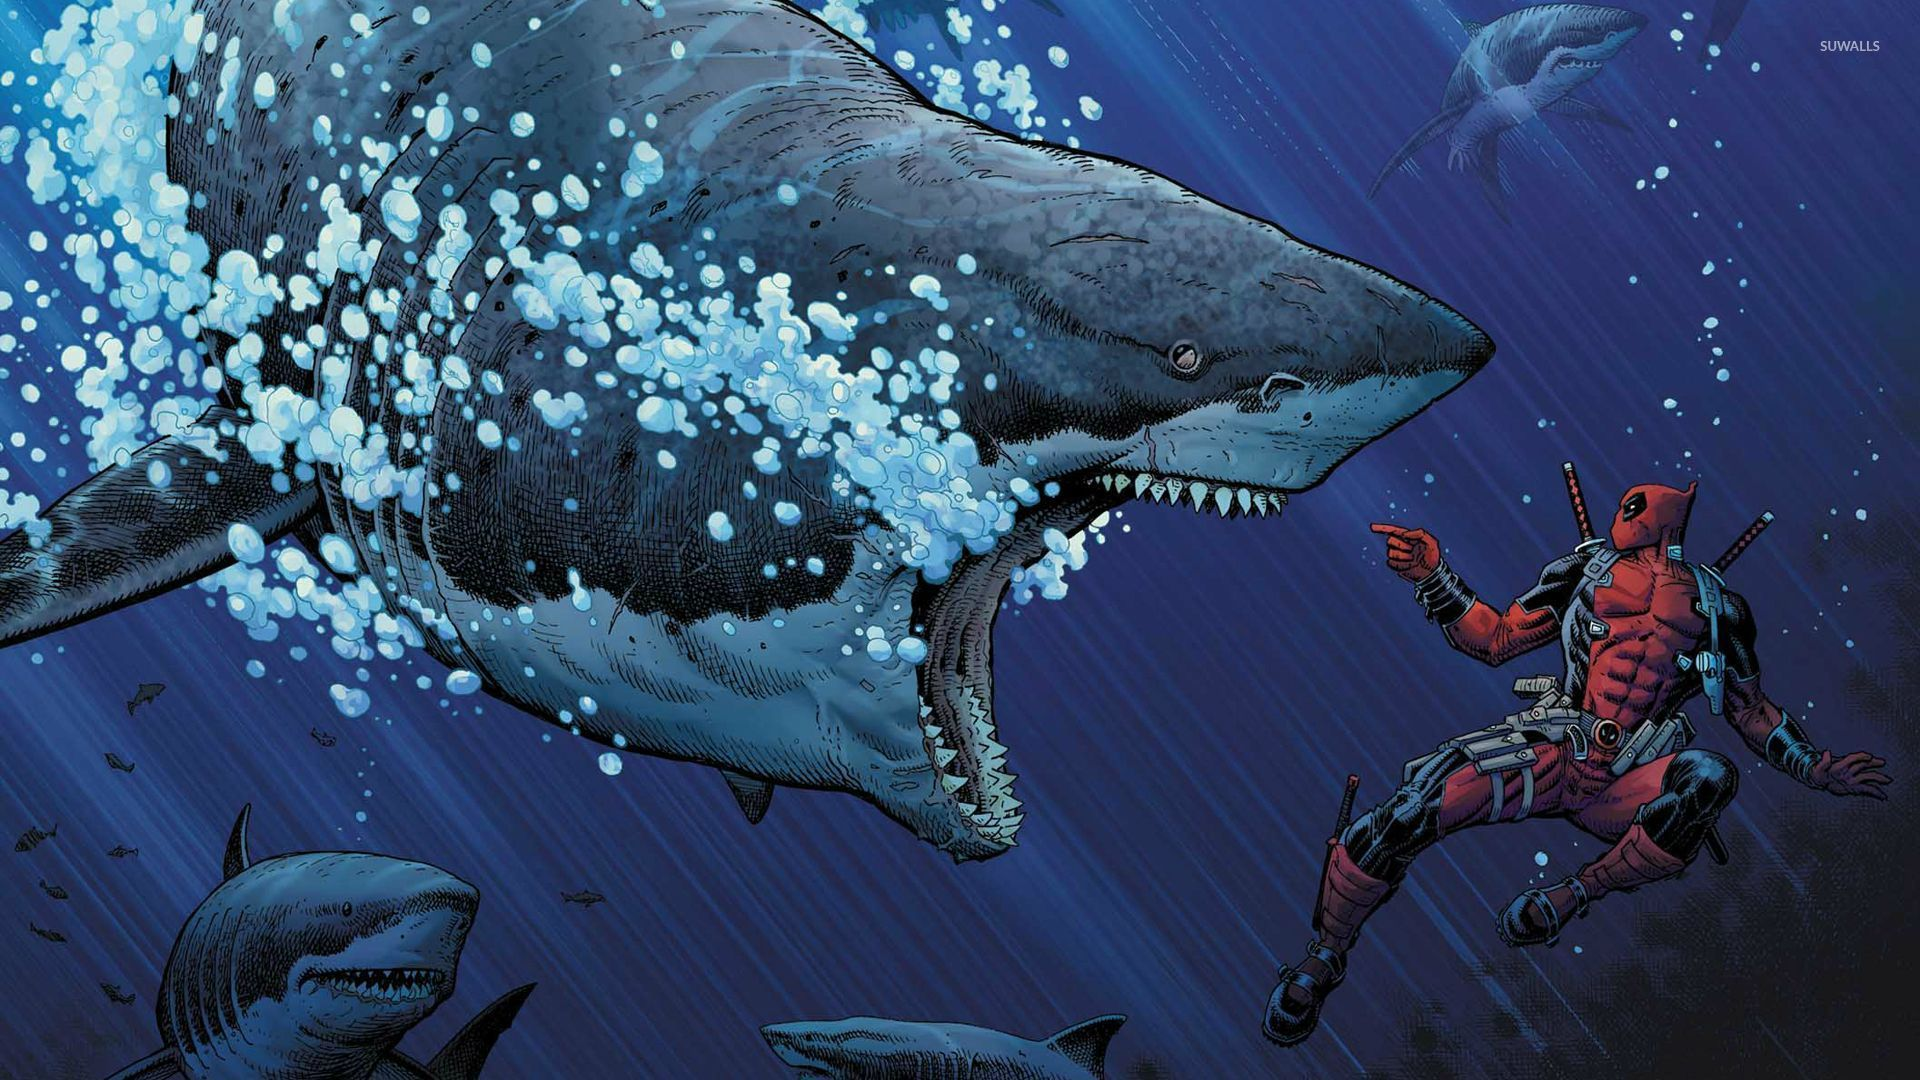 Deadpool And Great White Sharks 40884 1920×1080 Wallpaper